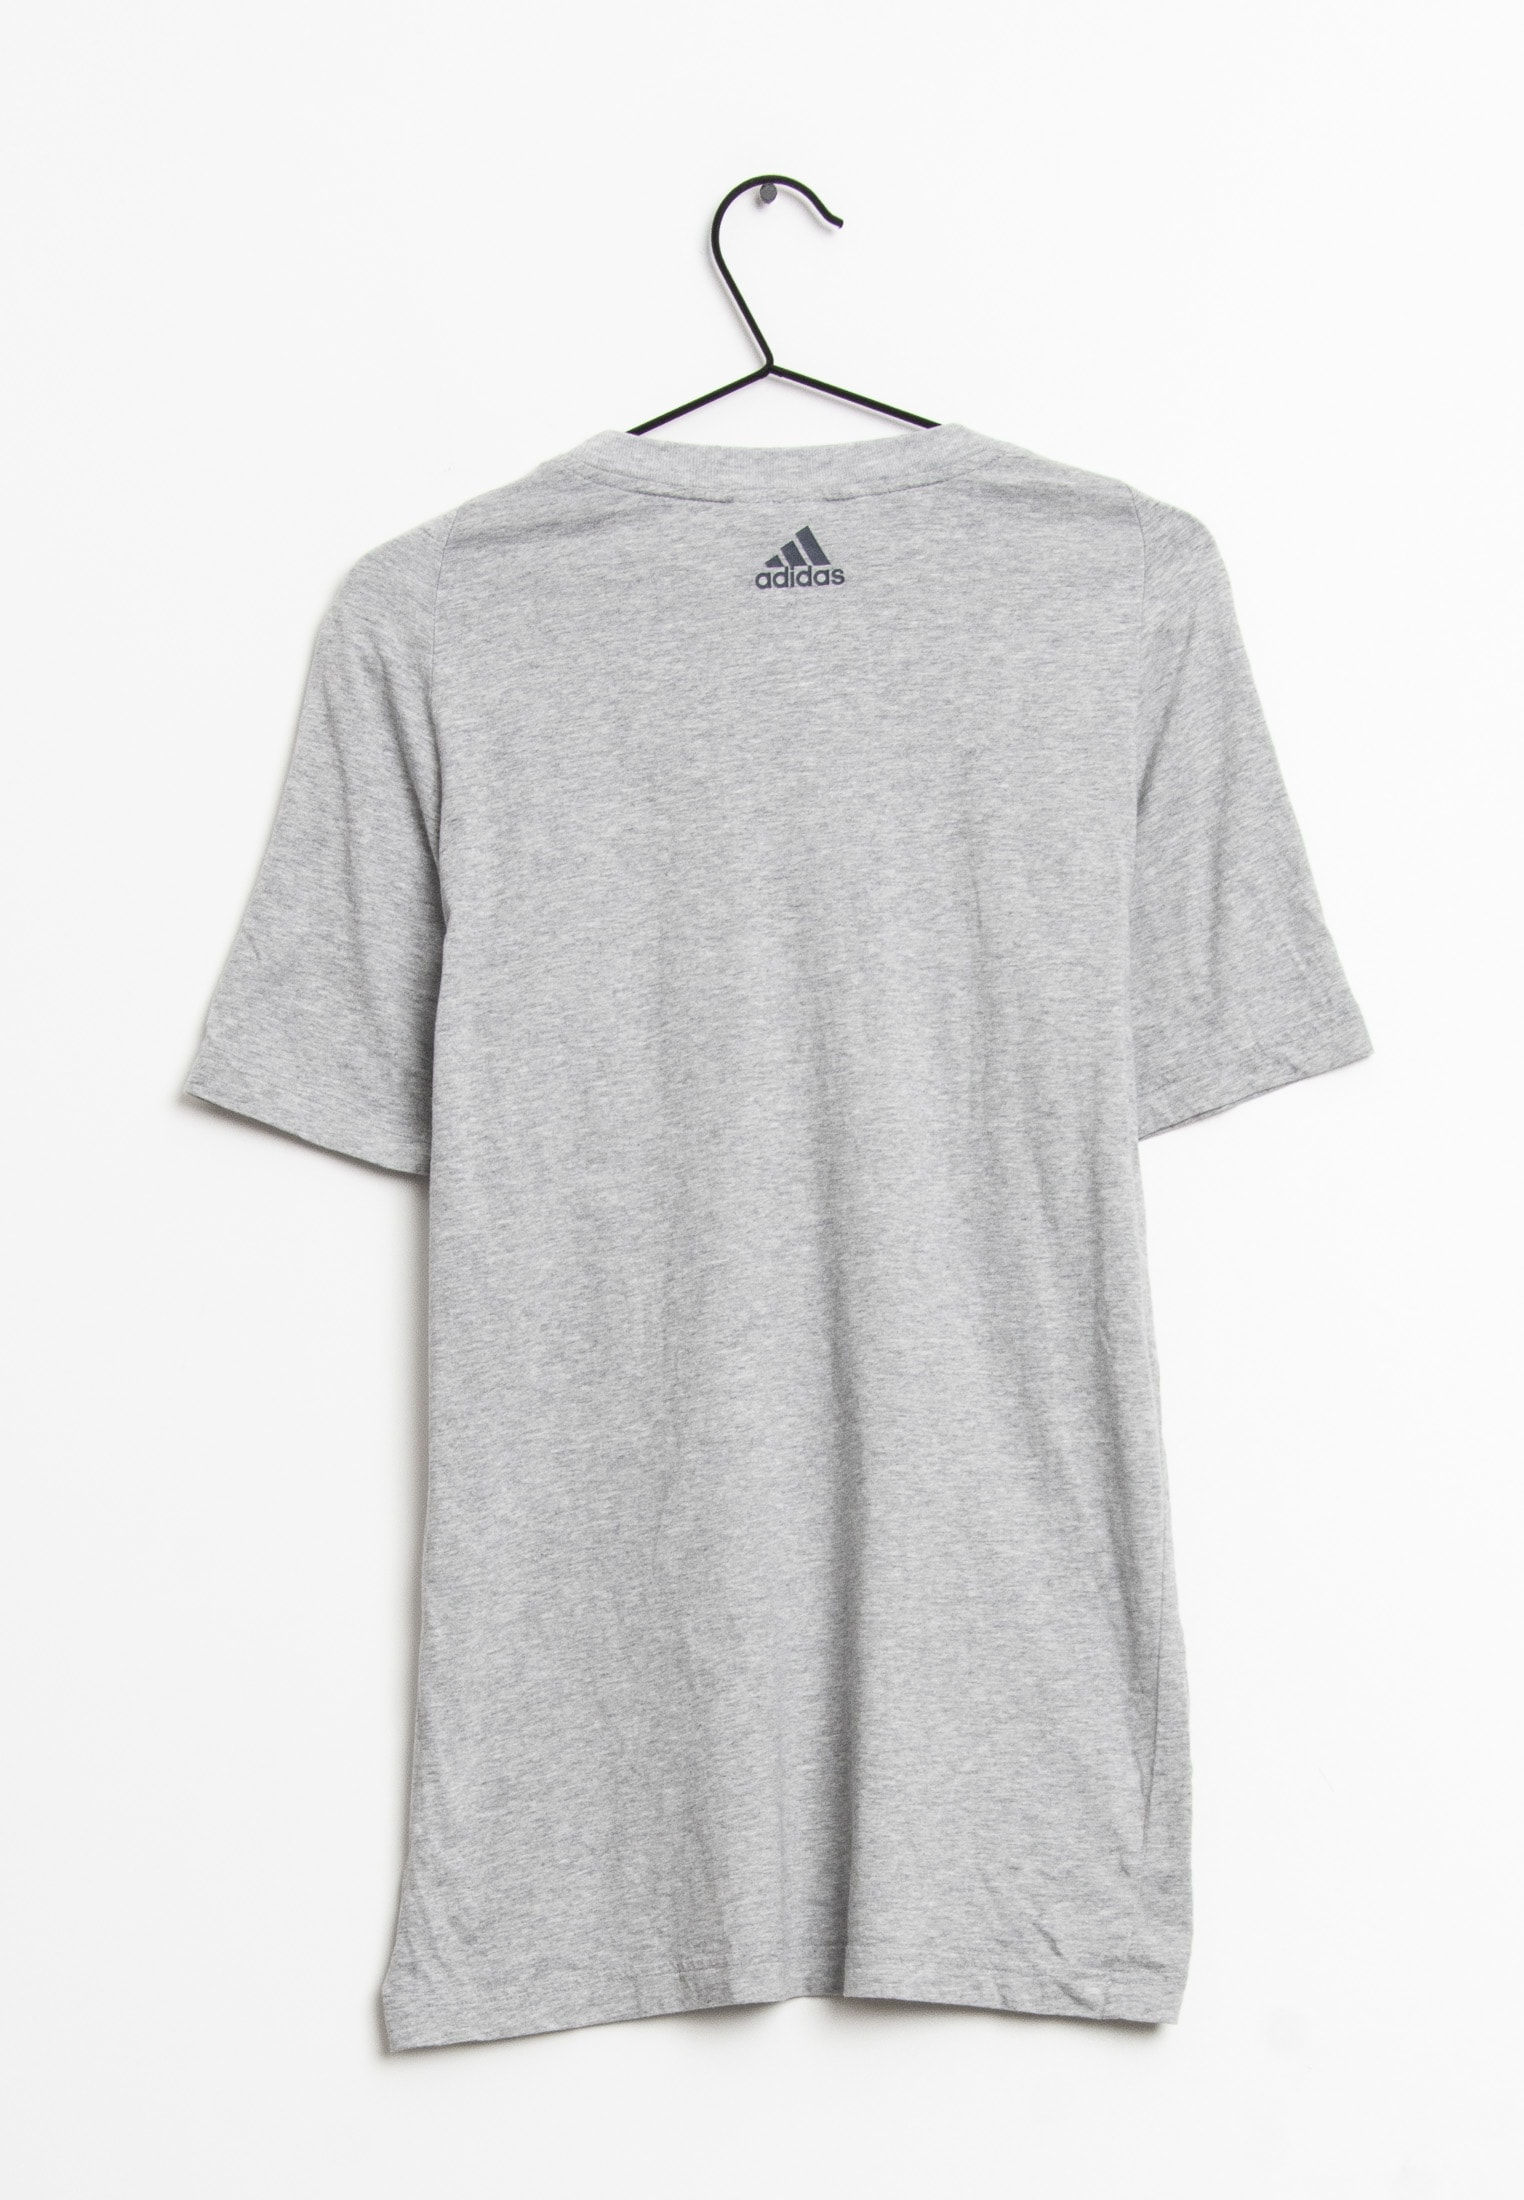 adidas Originals T-Shirt Grau Gr.M